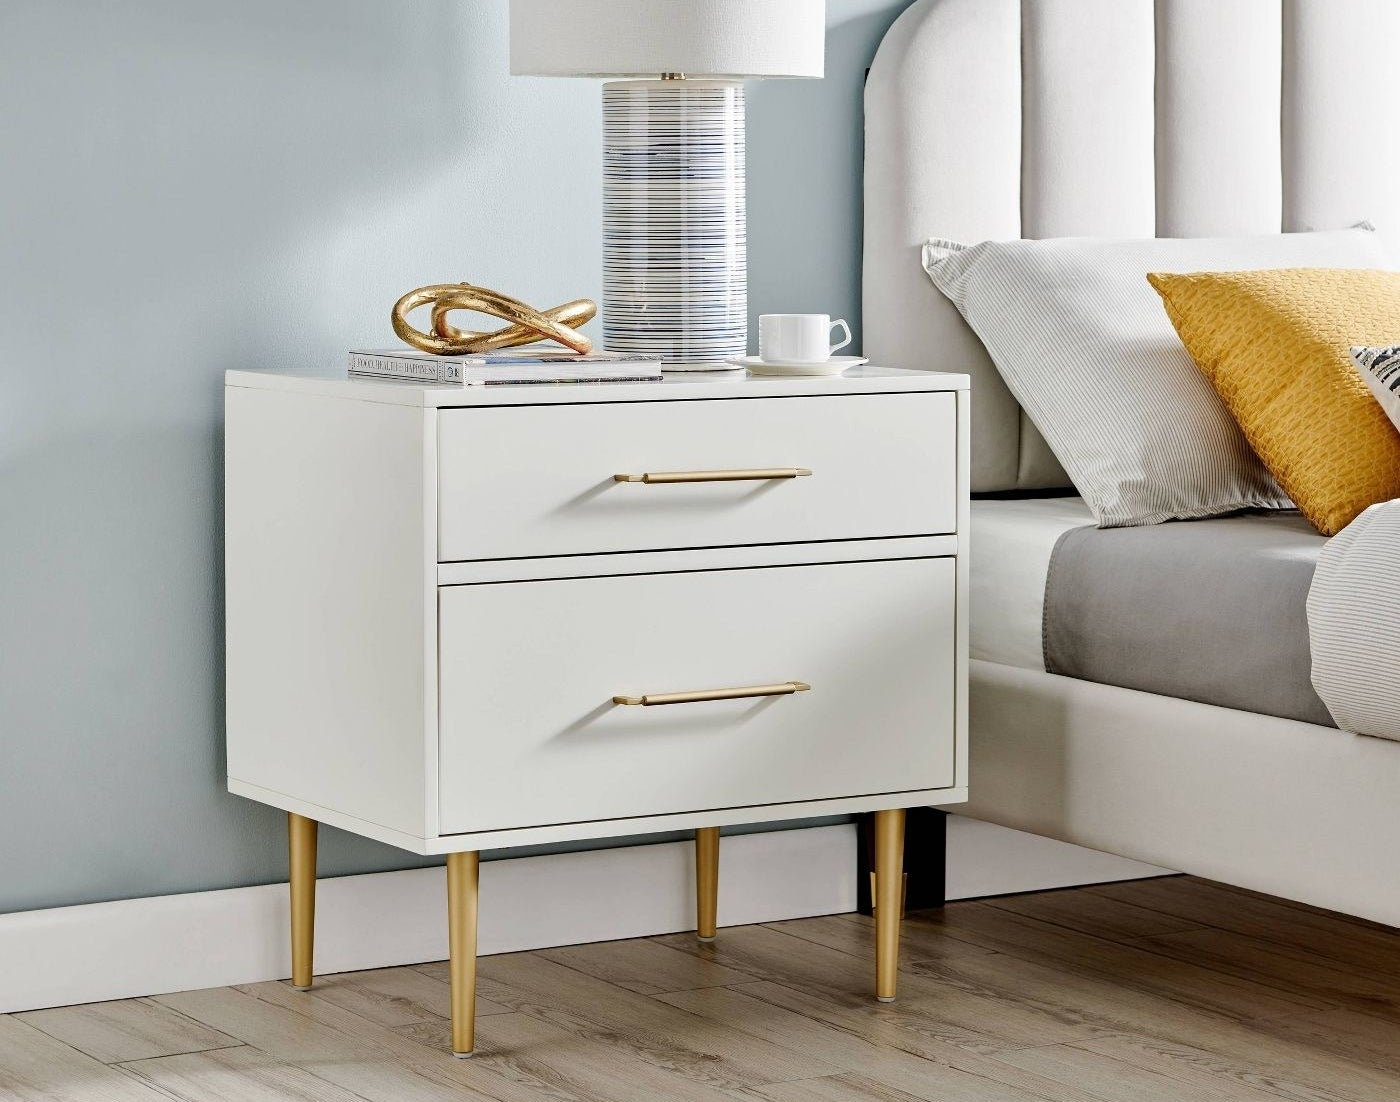 A white two drawer nightstand with brass handles and legs